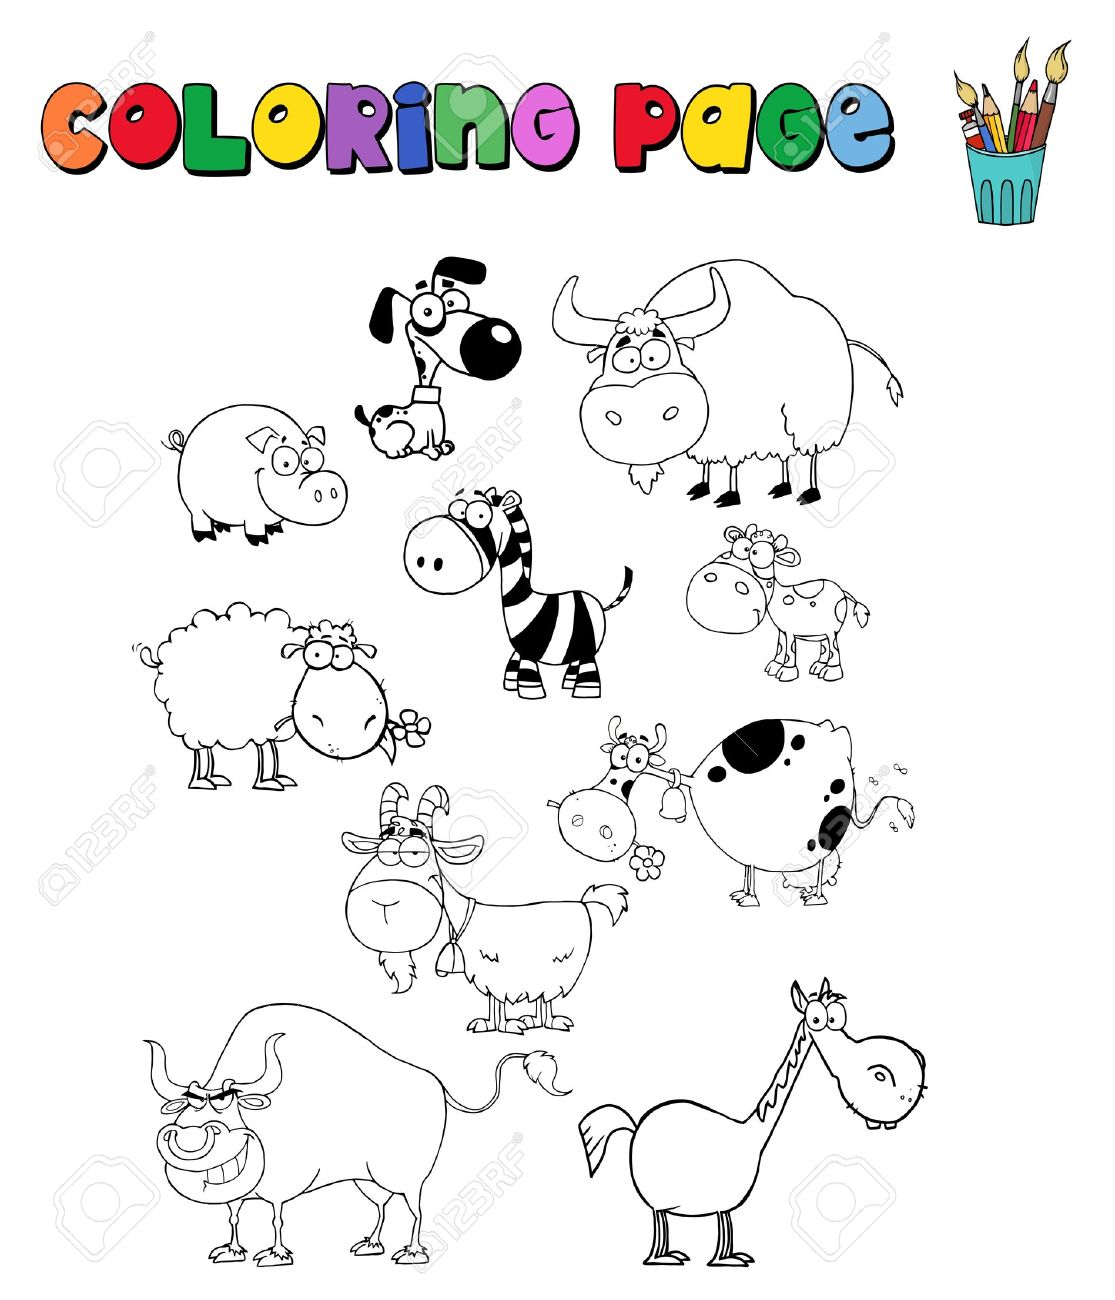 coloring page with farm animals royalty free cliparts vectors